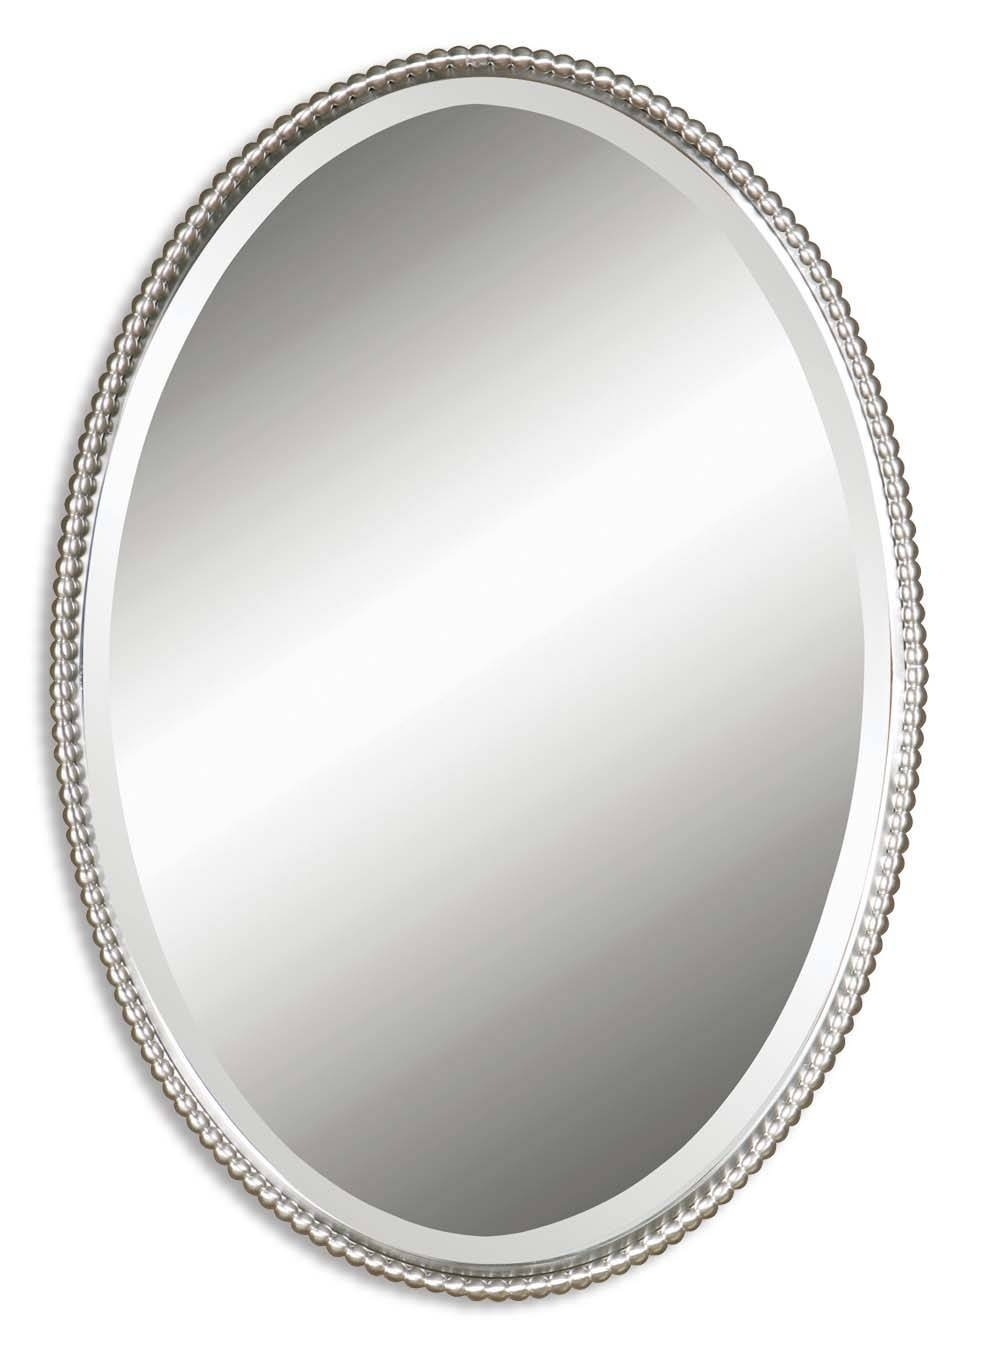 Ikea Kolja Mirror Oval | Carpetcleaningvirginia intended for Silver Oval Wall Mirrors (Image 12 of 25)